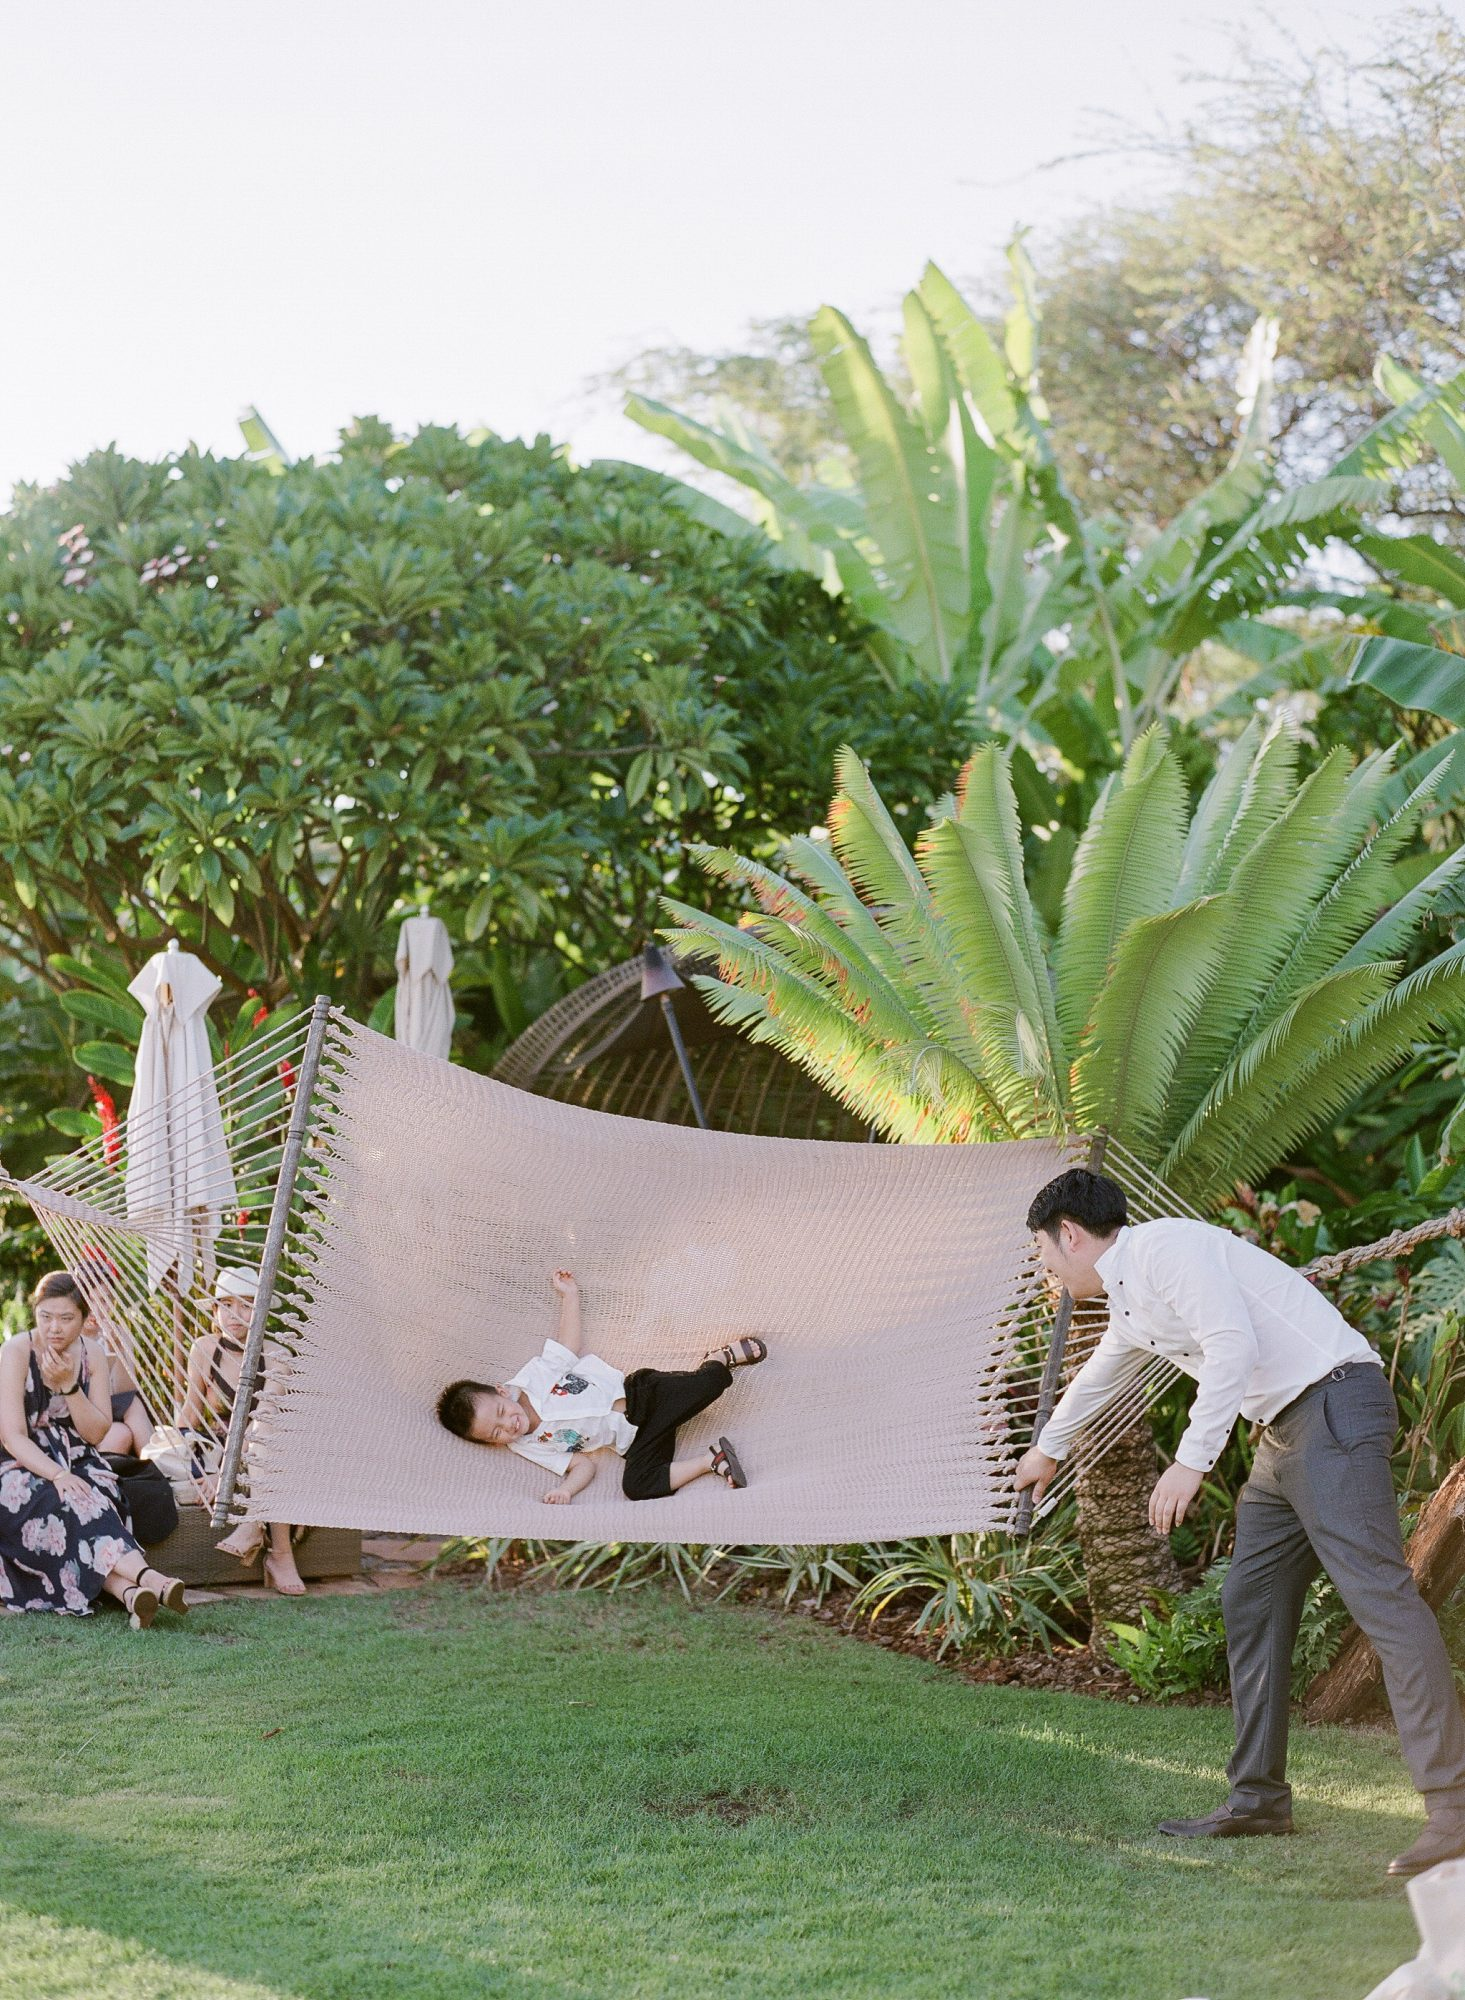 hawaiian wedding guests enjoy swing hammock